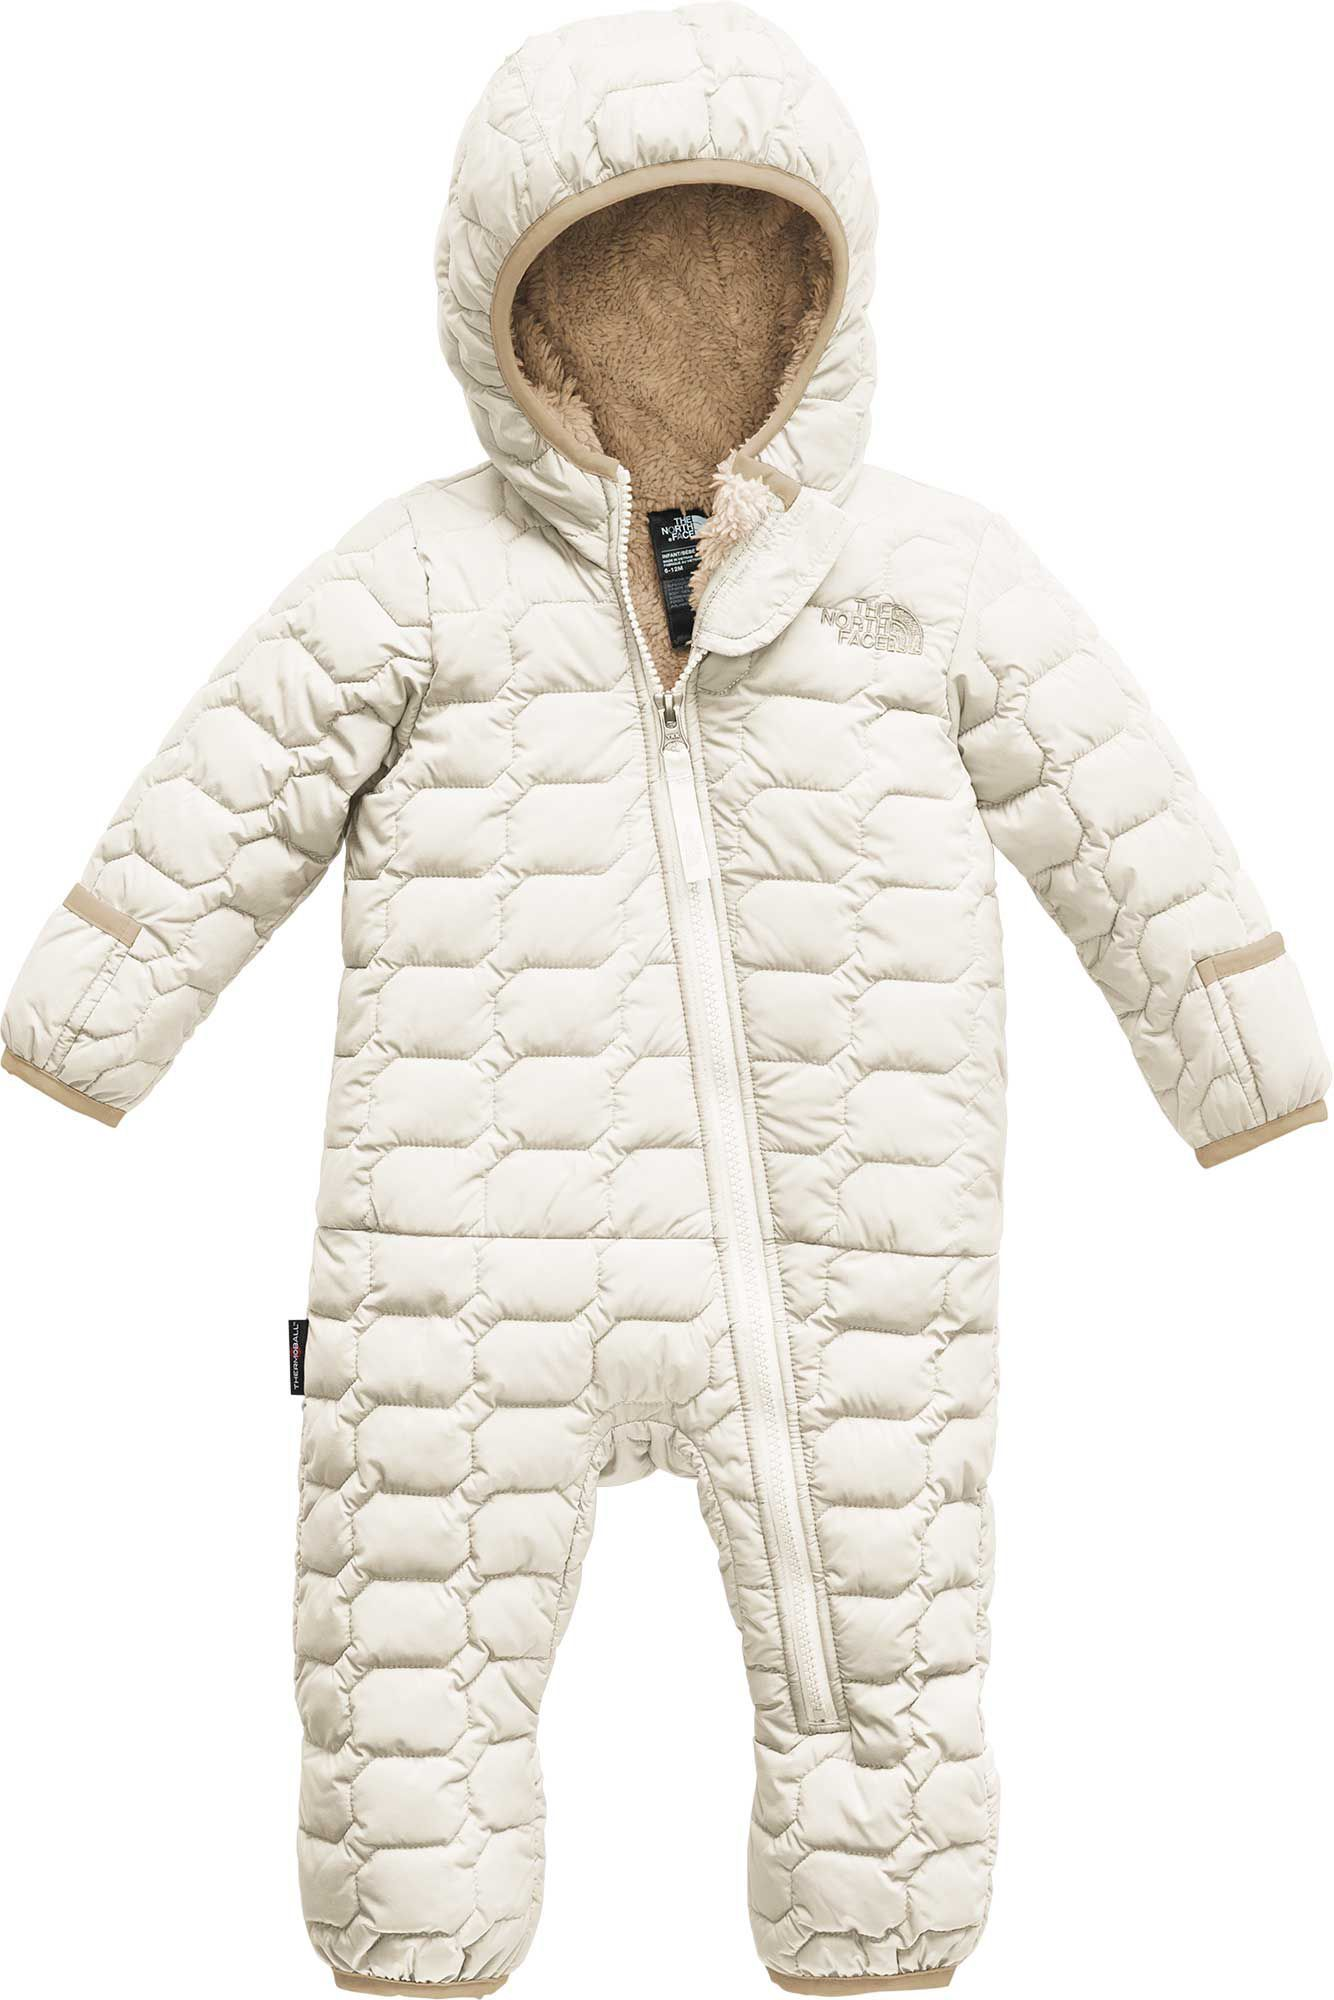 e1a86a05eacc The North Face Infant ThermoBall Bunting